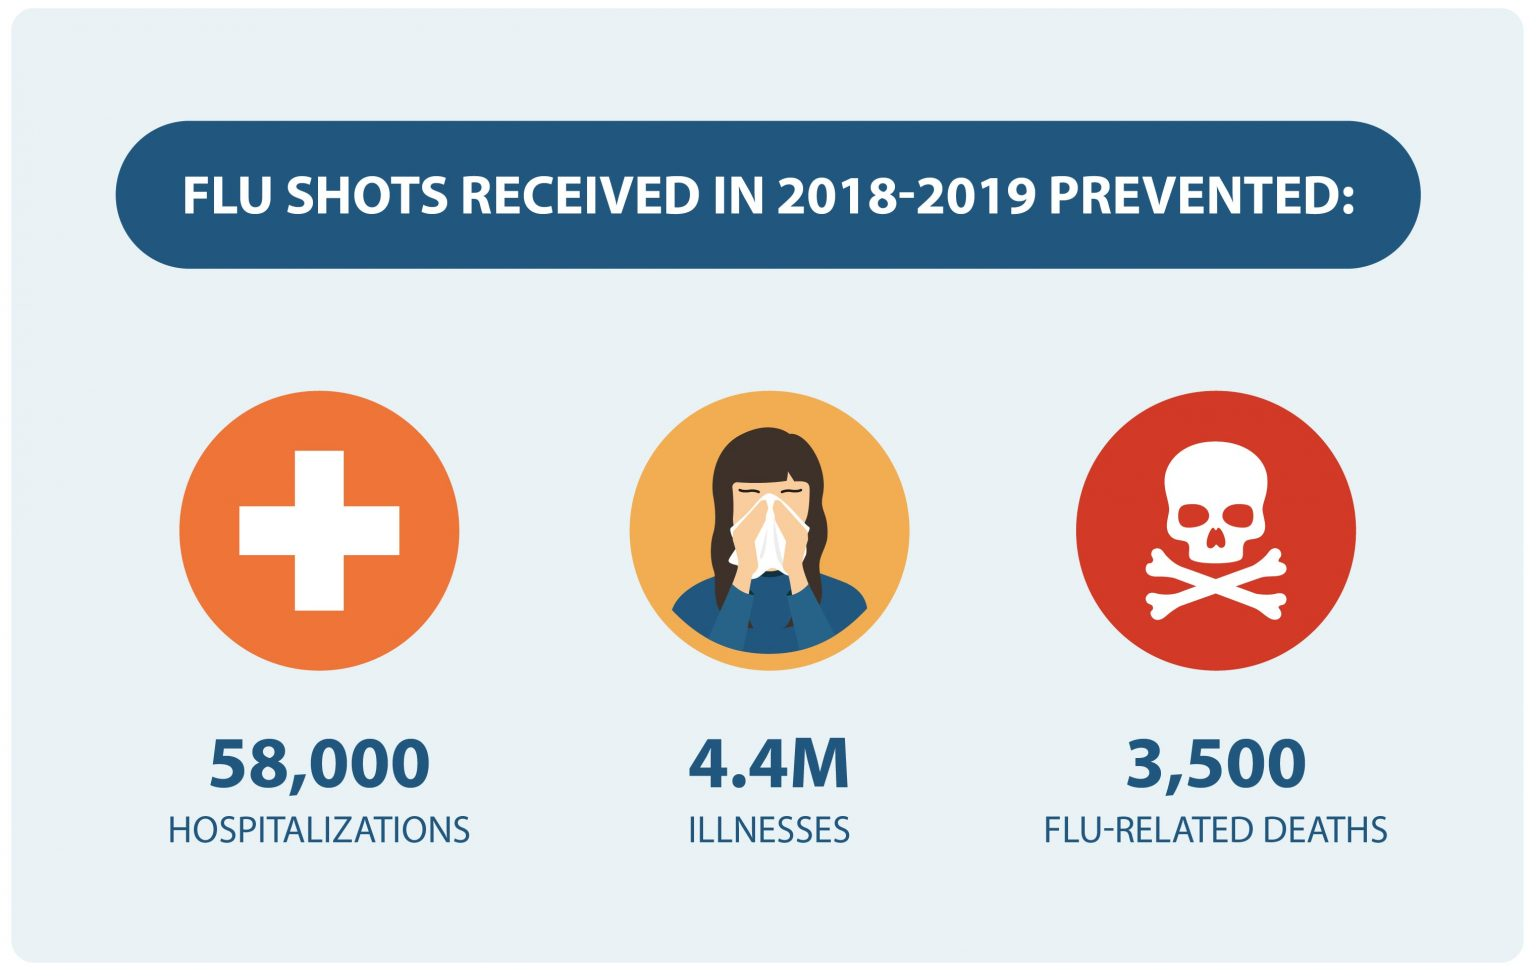 How to Prepare for the 2020 - 2021 Flu Season - NWPC